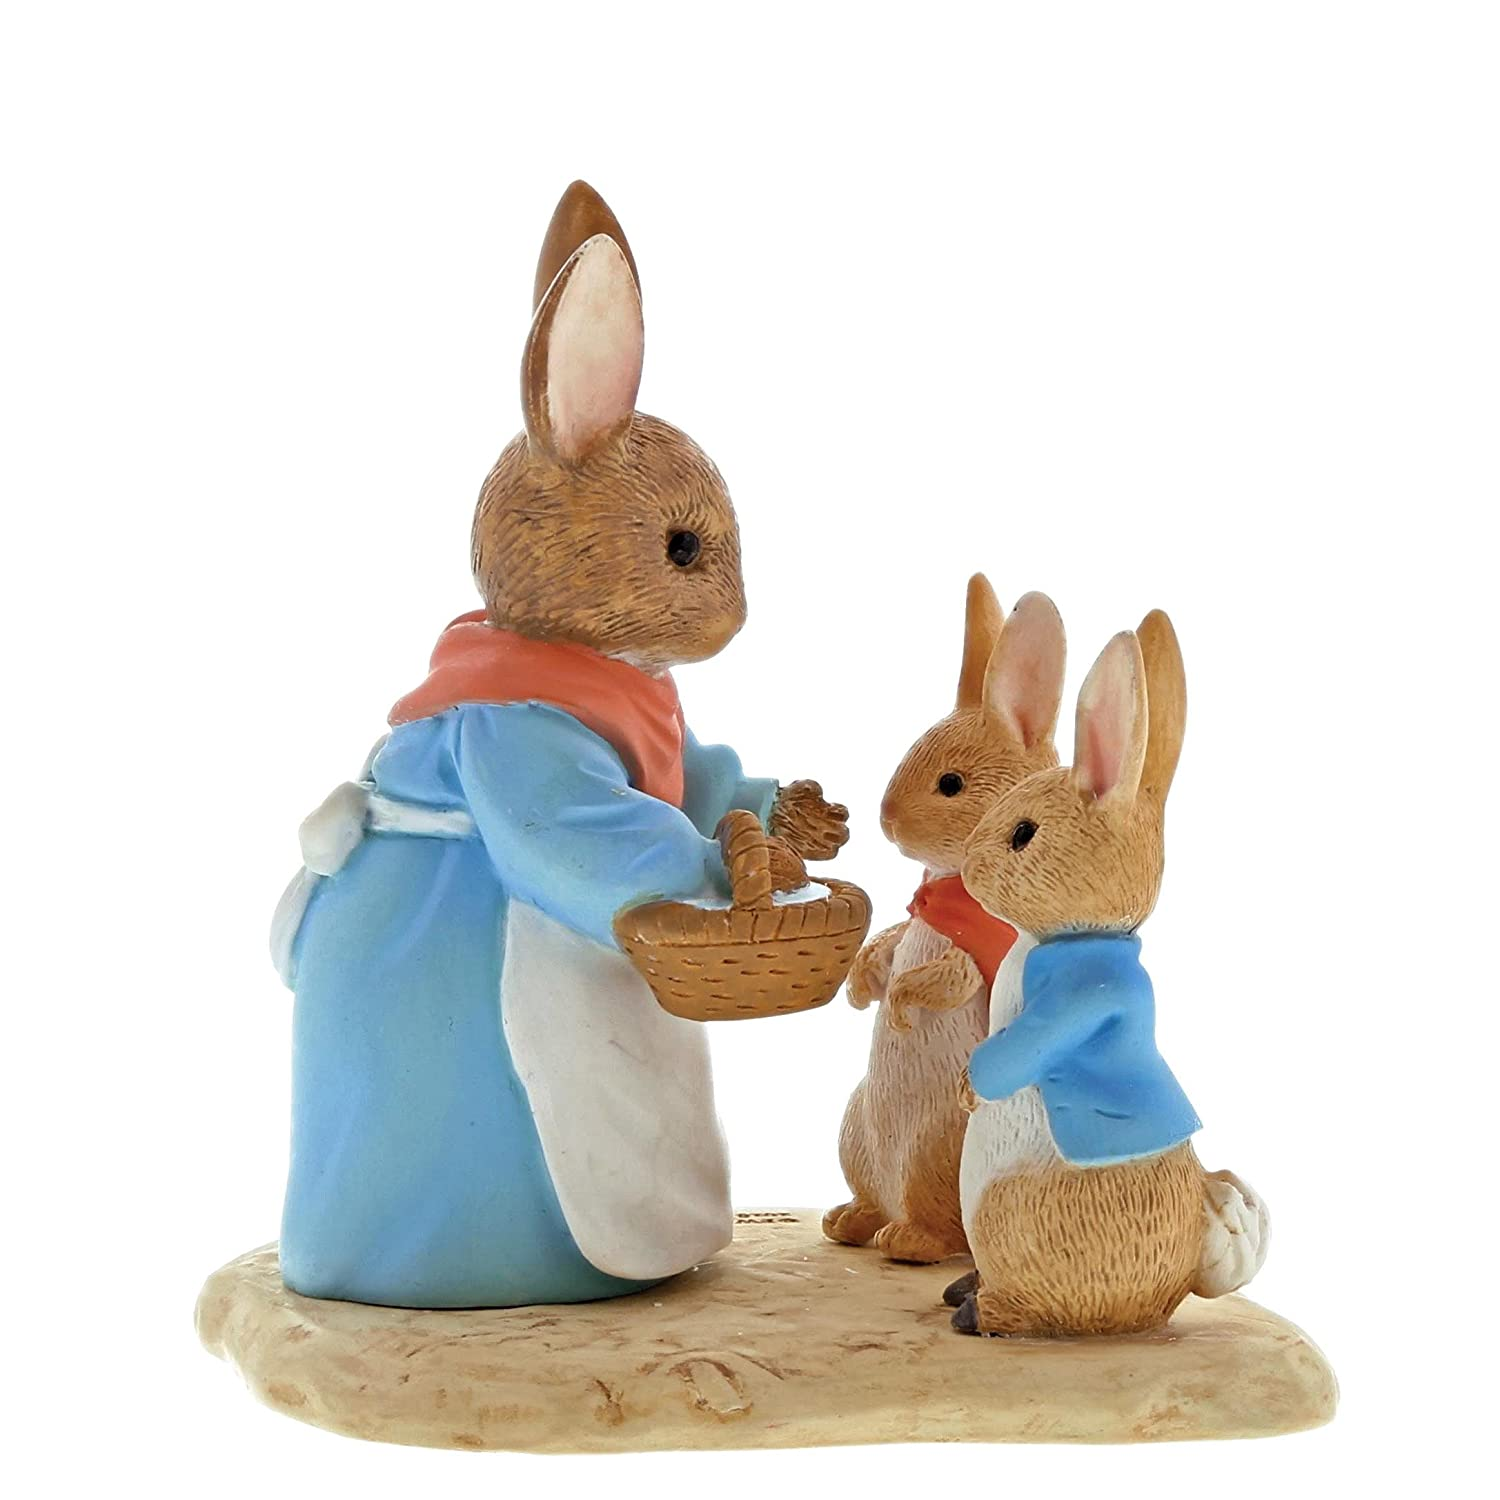 Beatrix Potter A29193 Mrs Rabbit, Flopsy and Peter Figurine, Resin, Colourful, 4 x 7 x 7 cm Enesco